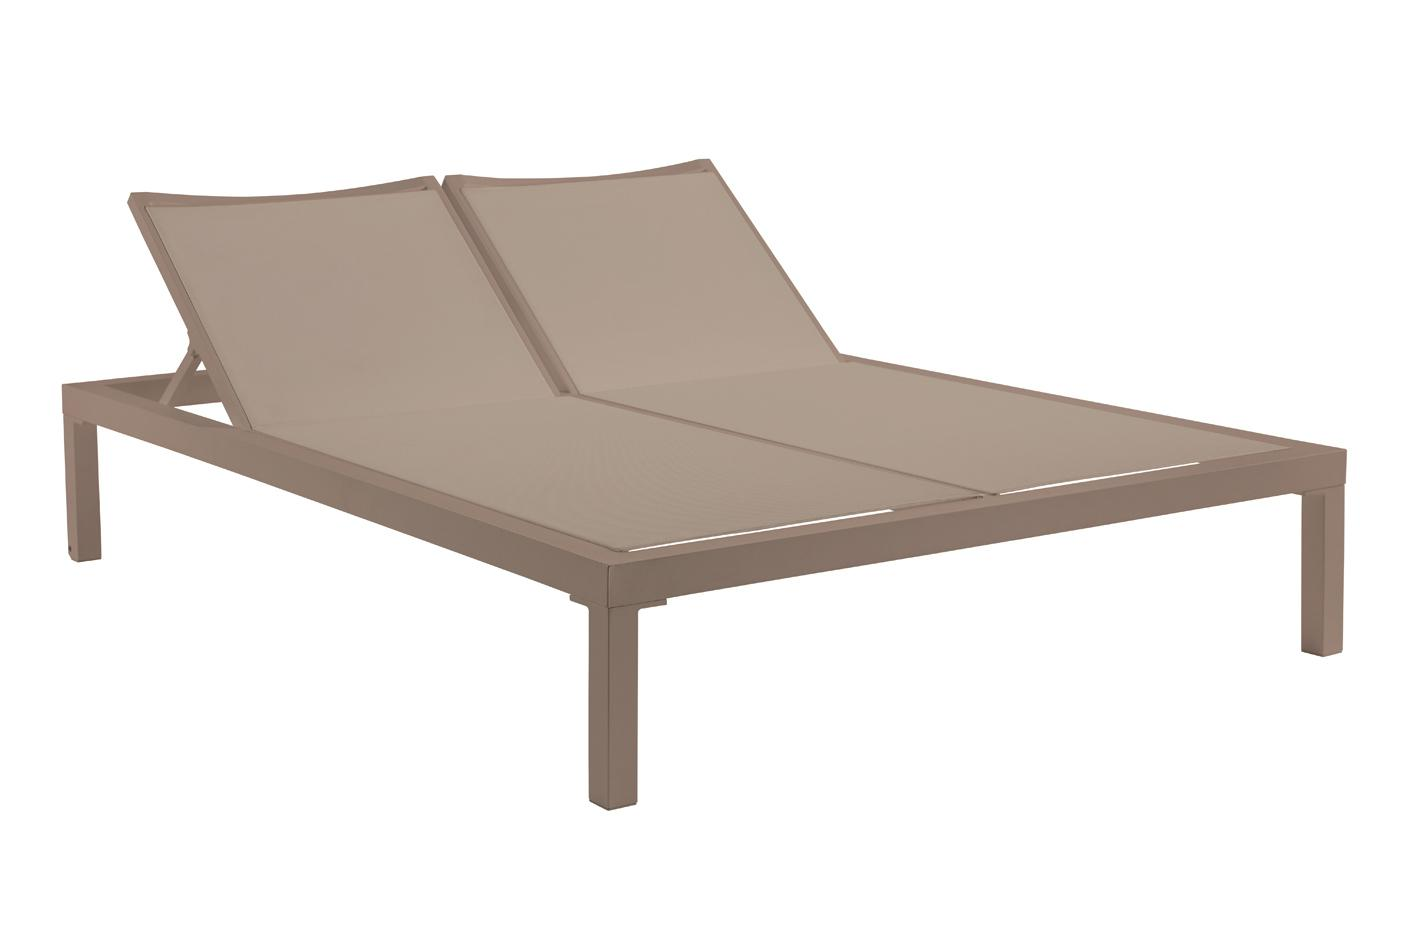 sifas outdoor furniture. Sifas Komfy Doppelliege / Sonnenliege Exkl. Outdoor Furniture